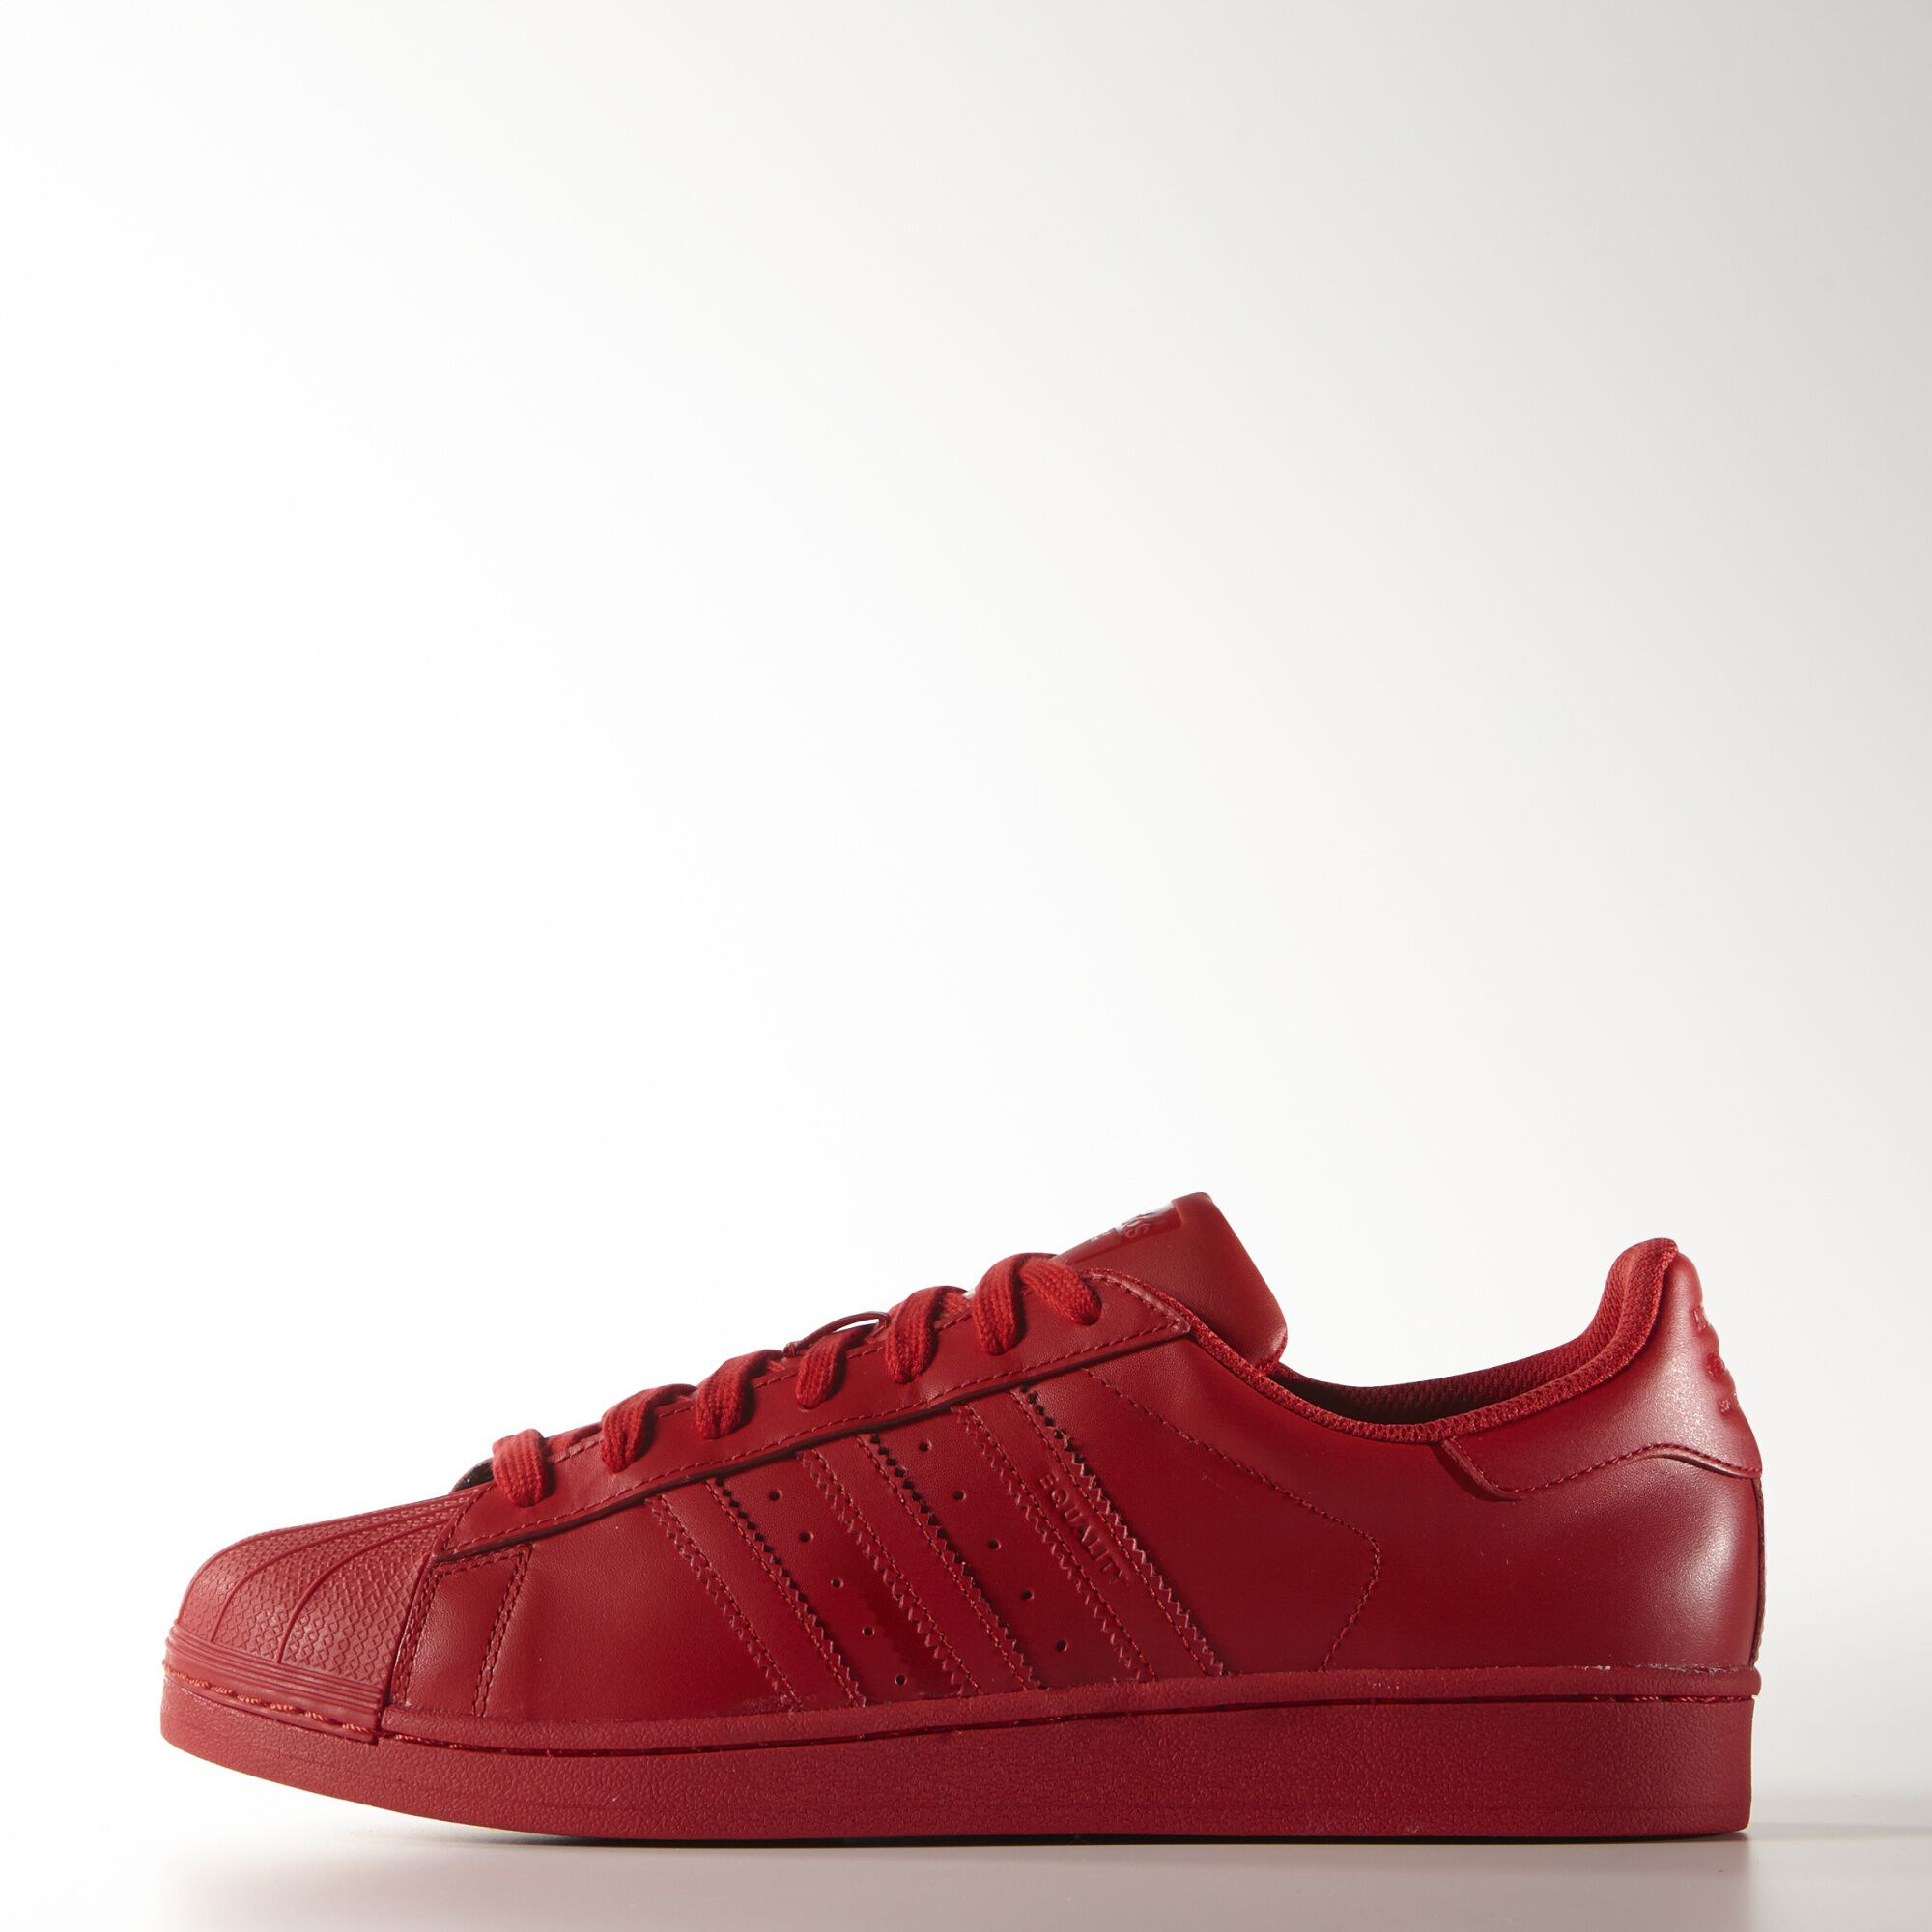 Zapatillas Adidas Originals Rojas